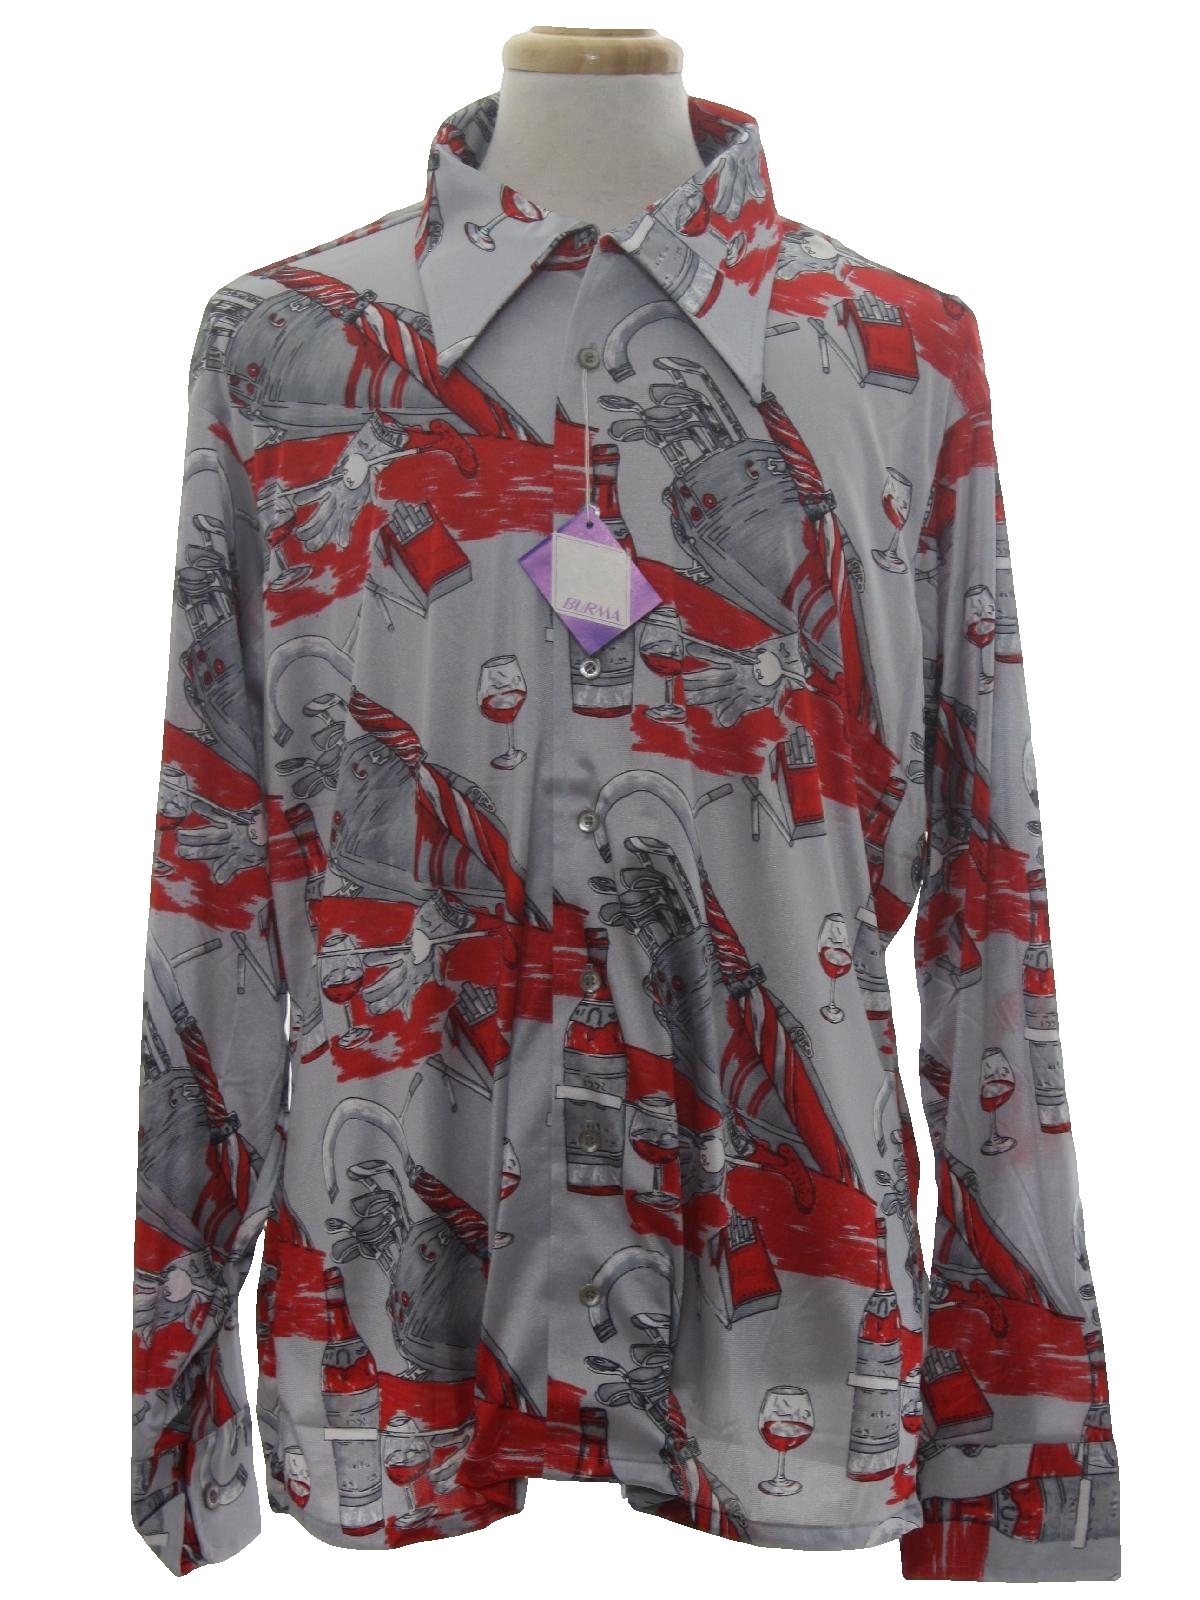 1970's Oleg Cassini by Burma, designer Mens Designer Shiny Nylon Art Print  Disco Shirt